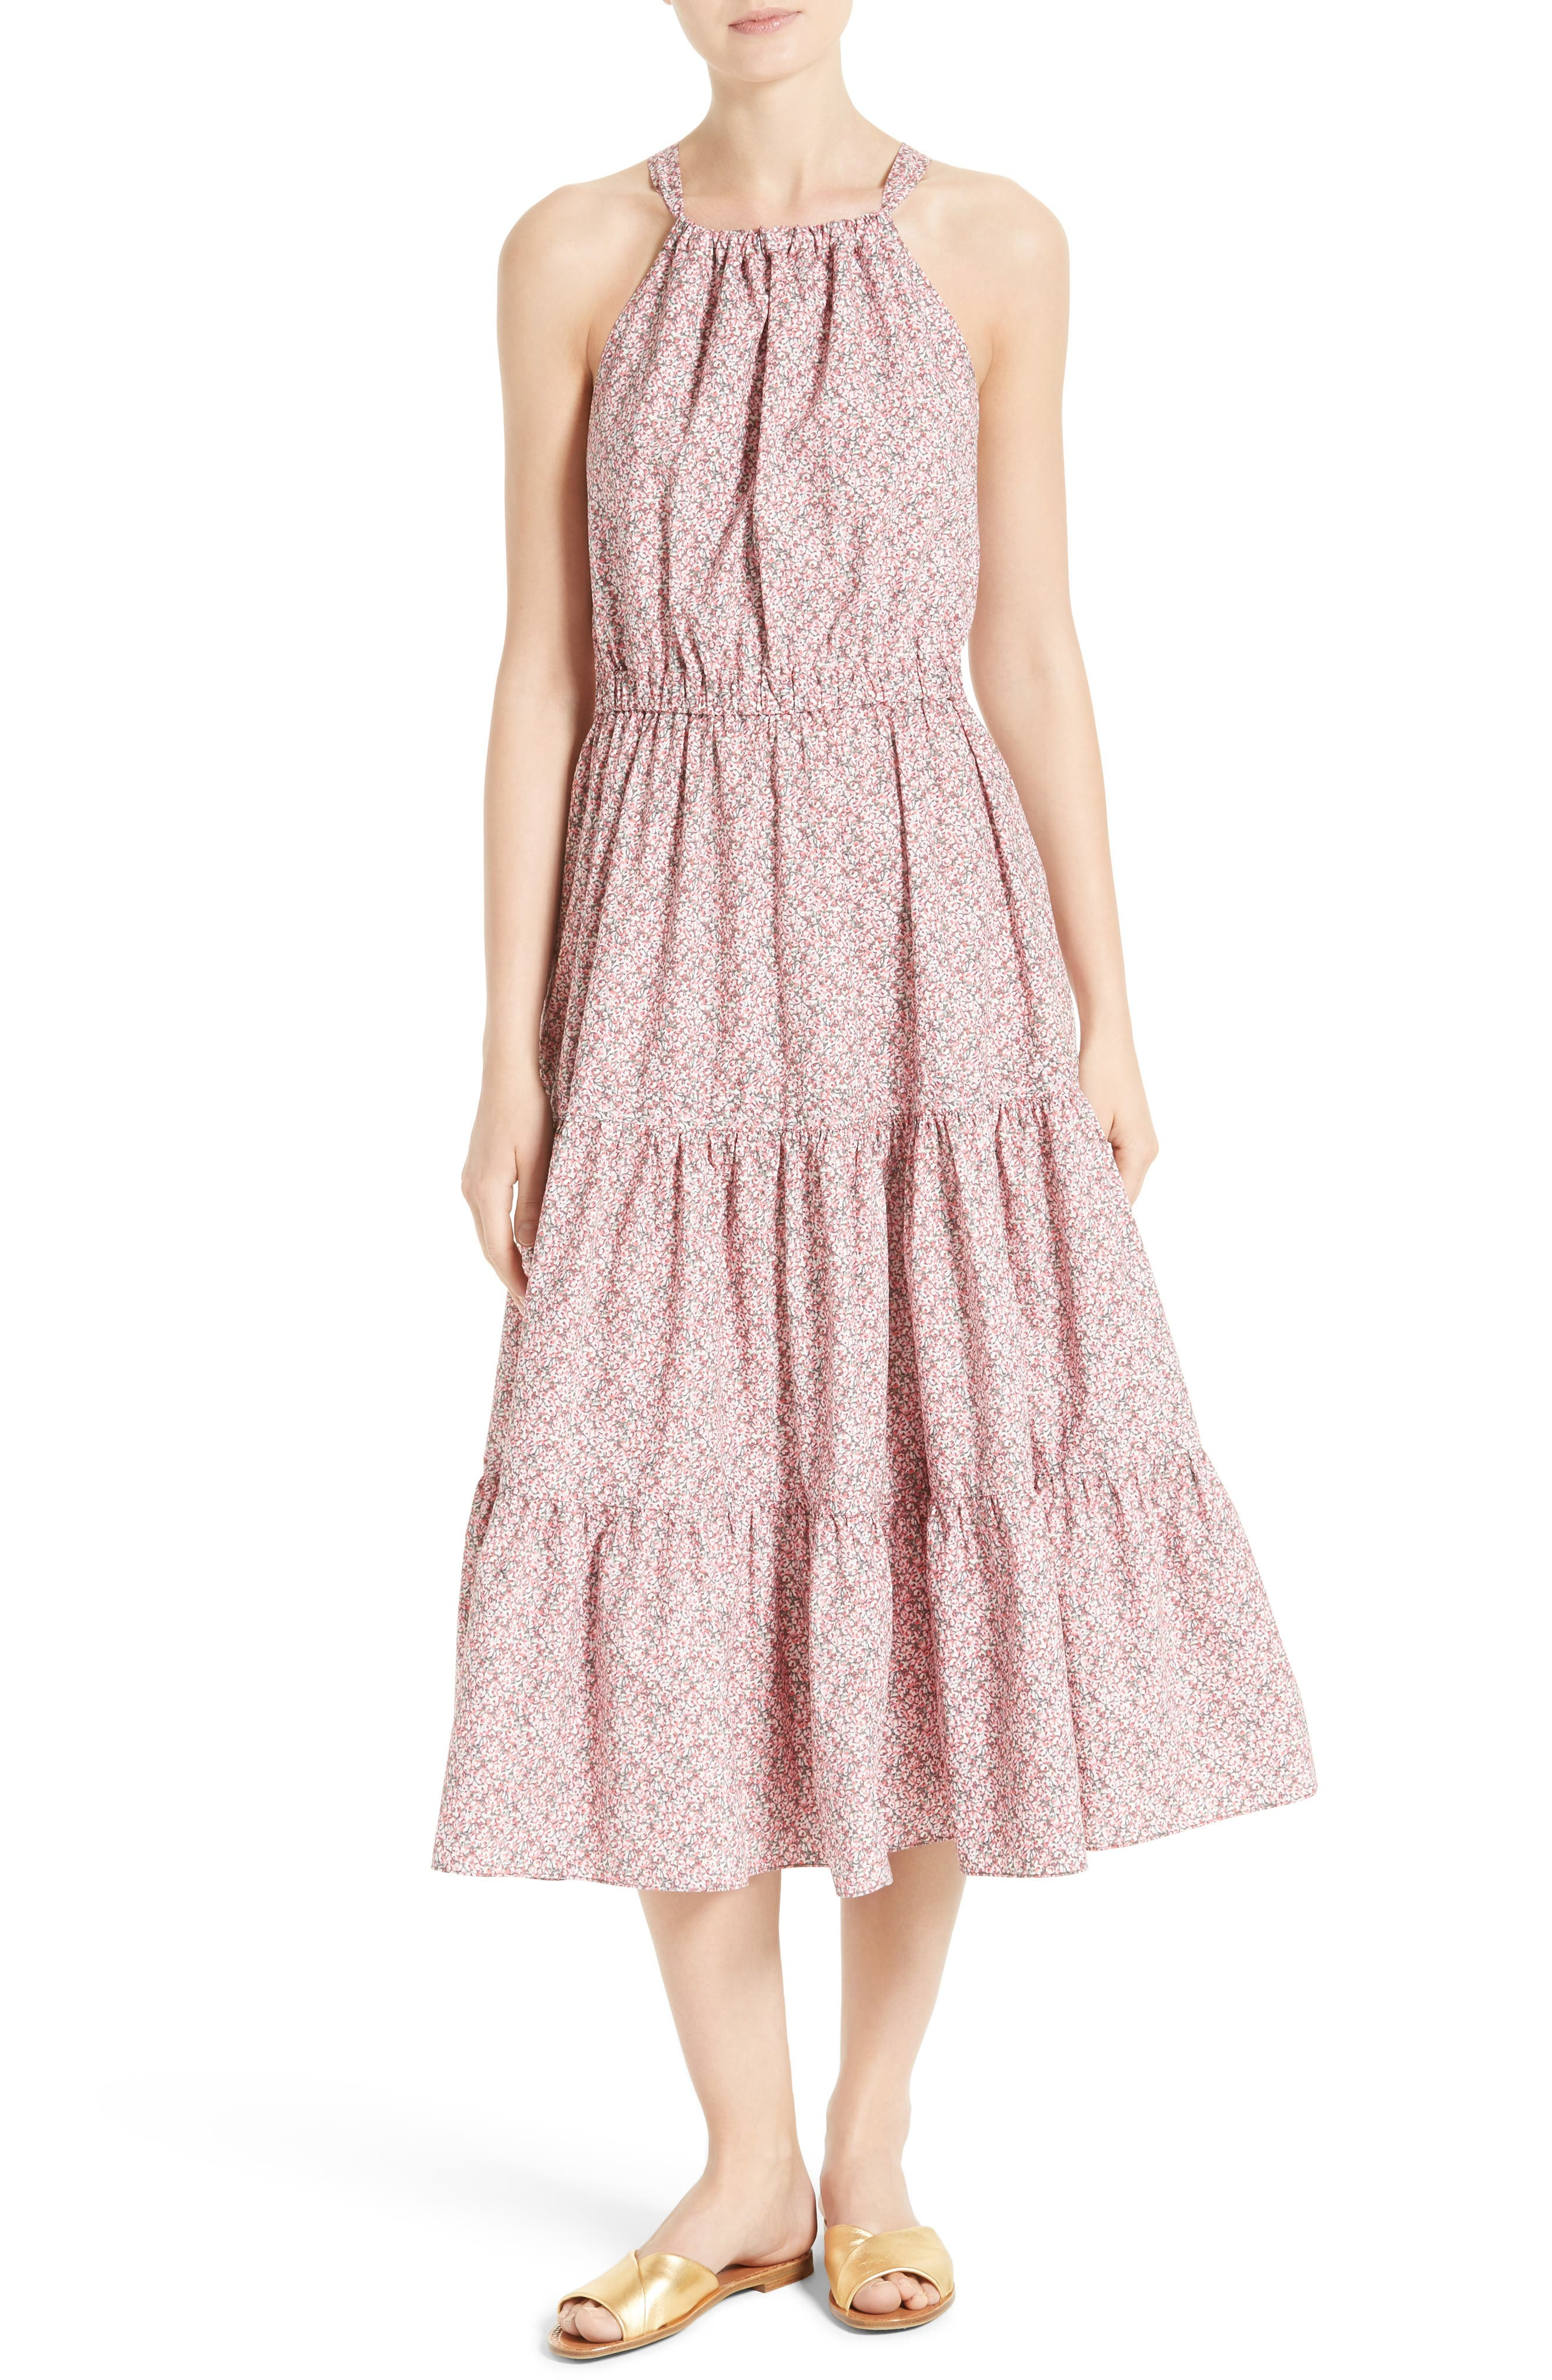 Alternate Image 1 Selected - La Vie Rebecca Taylor Meadow Floral Tie Back Tiered Sundress